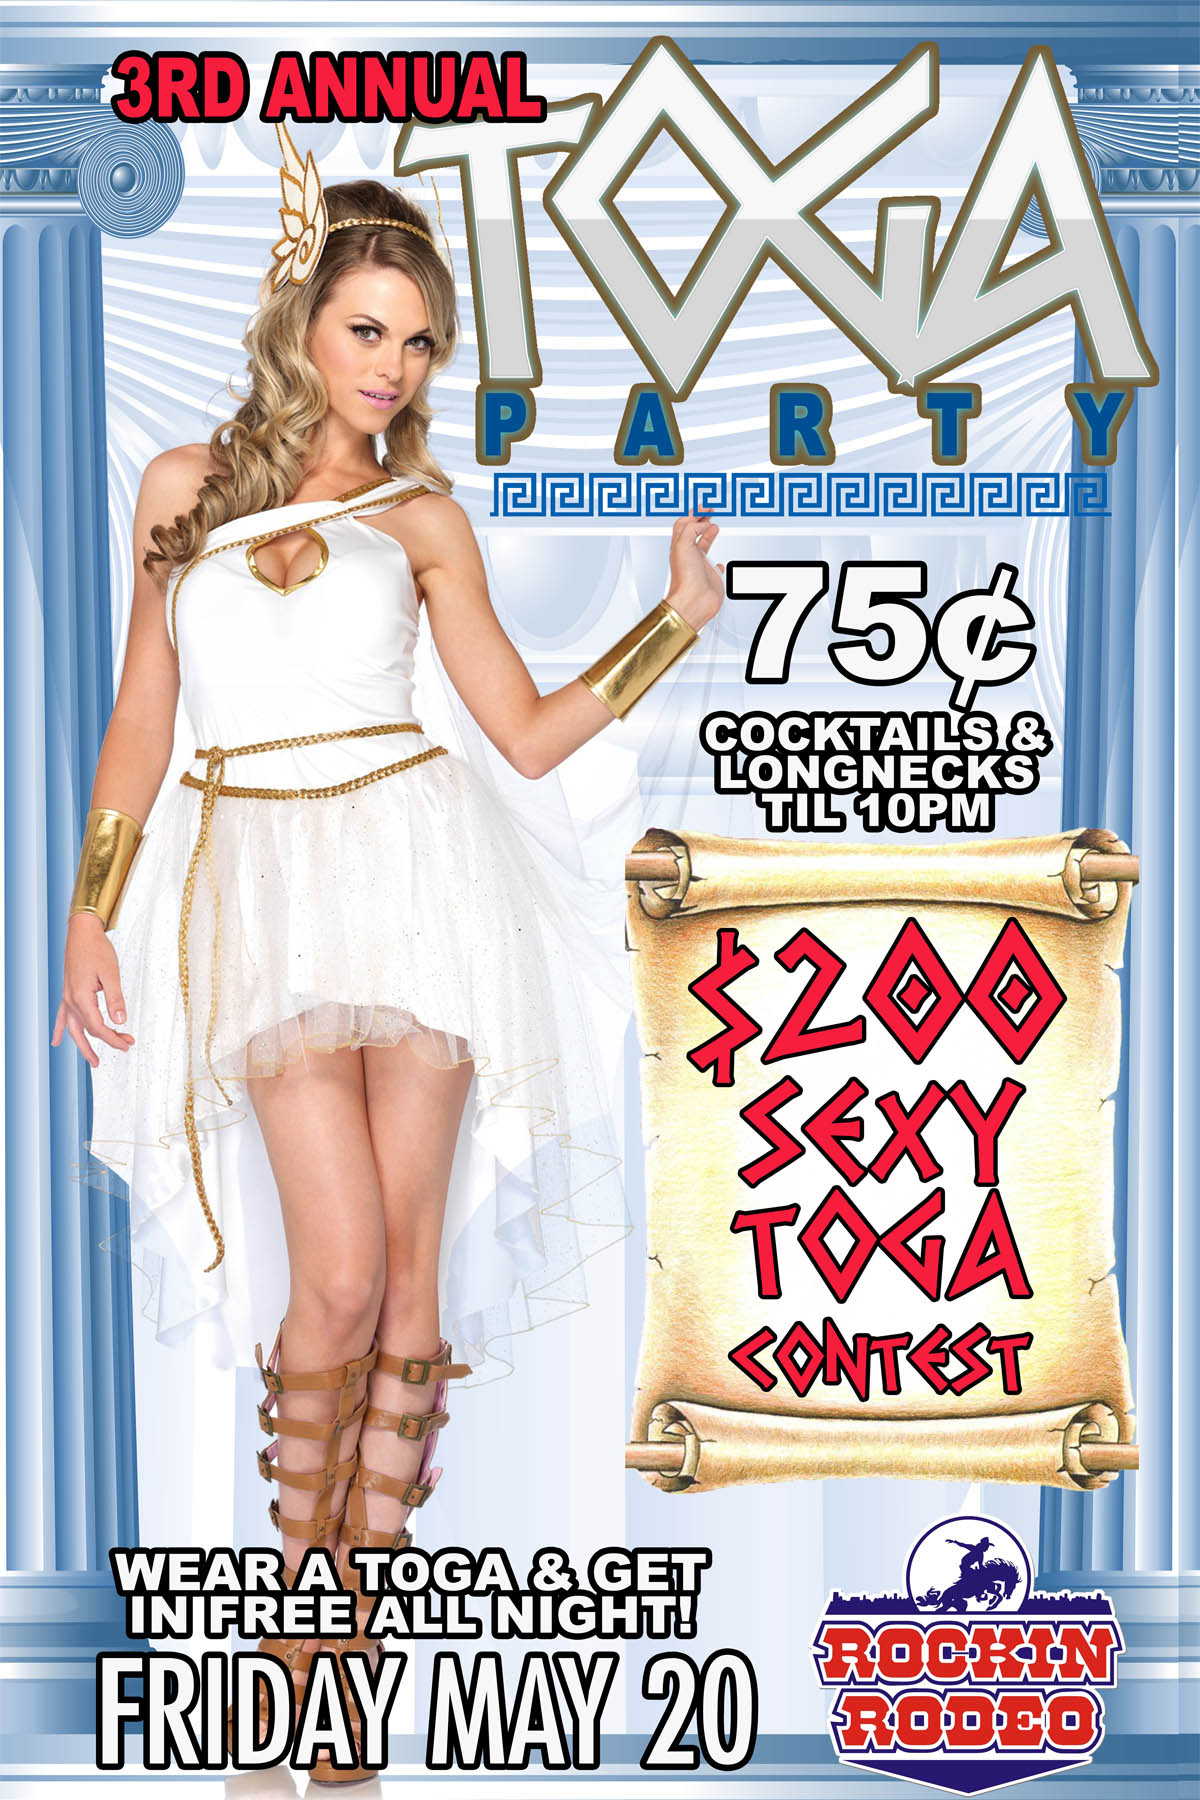 Toga Party Poster Flyer Design For Electric Cowboy Country And Dance Club In St Louis Toga Toga Toga Toga Party Toga Party Poster